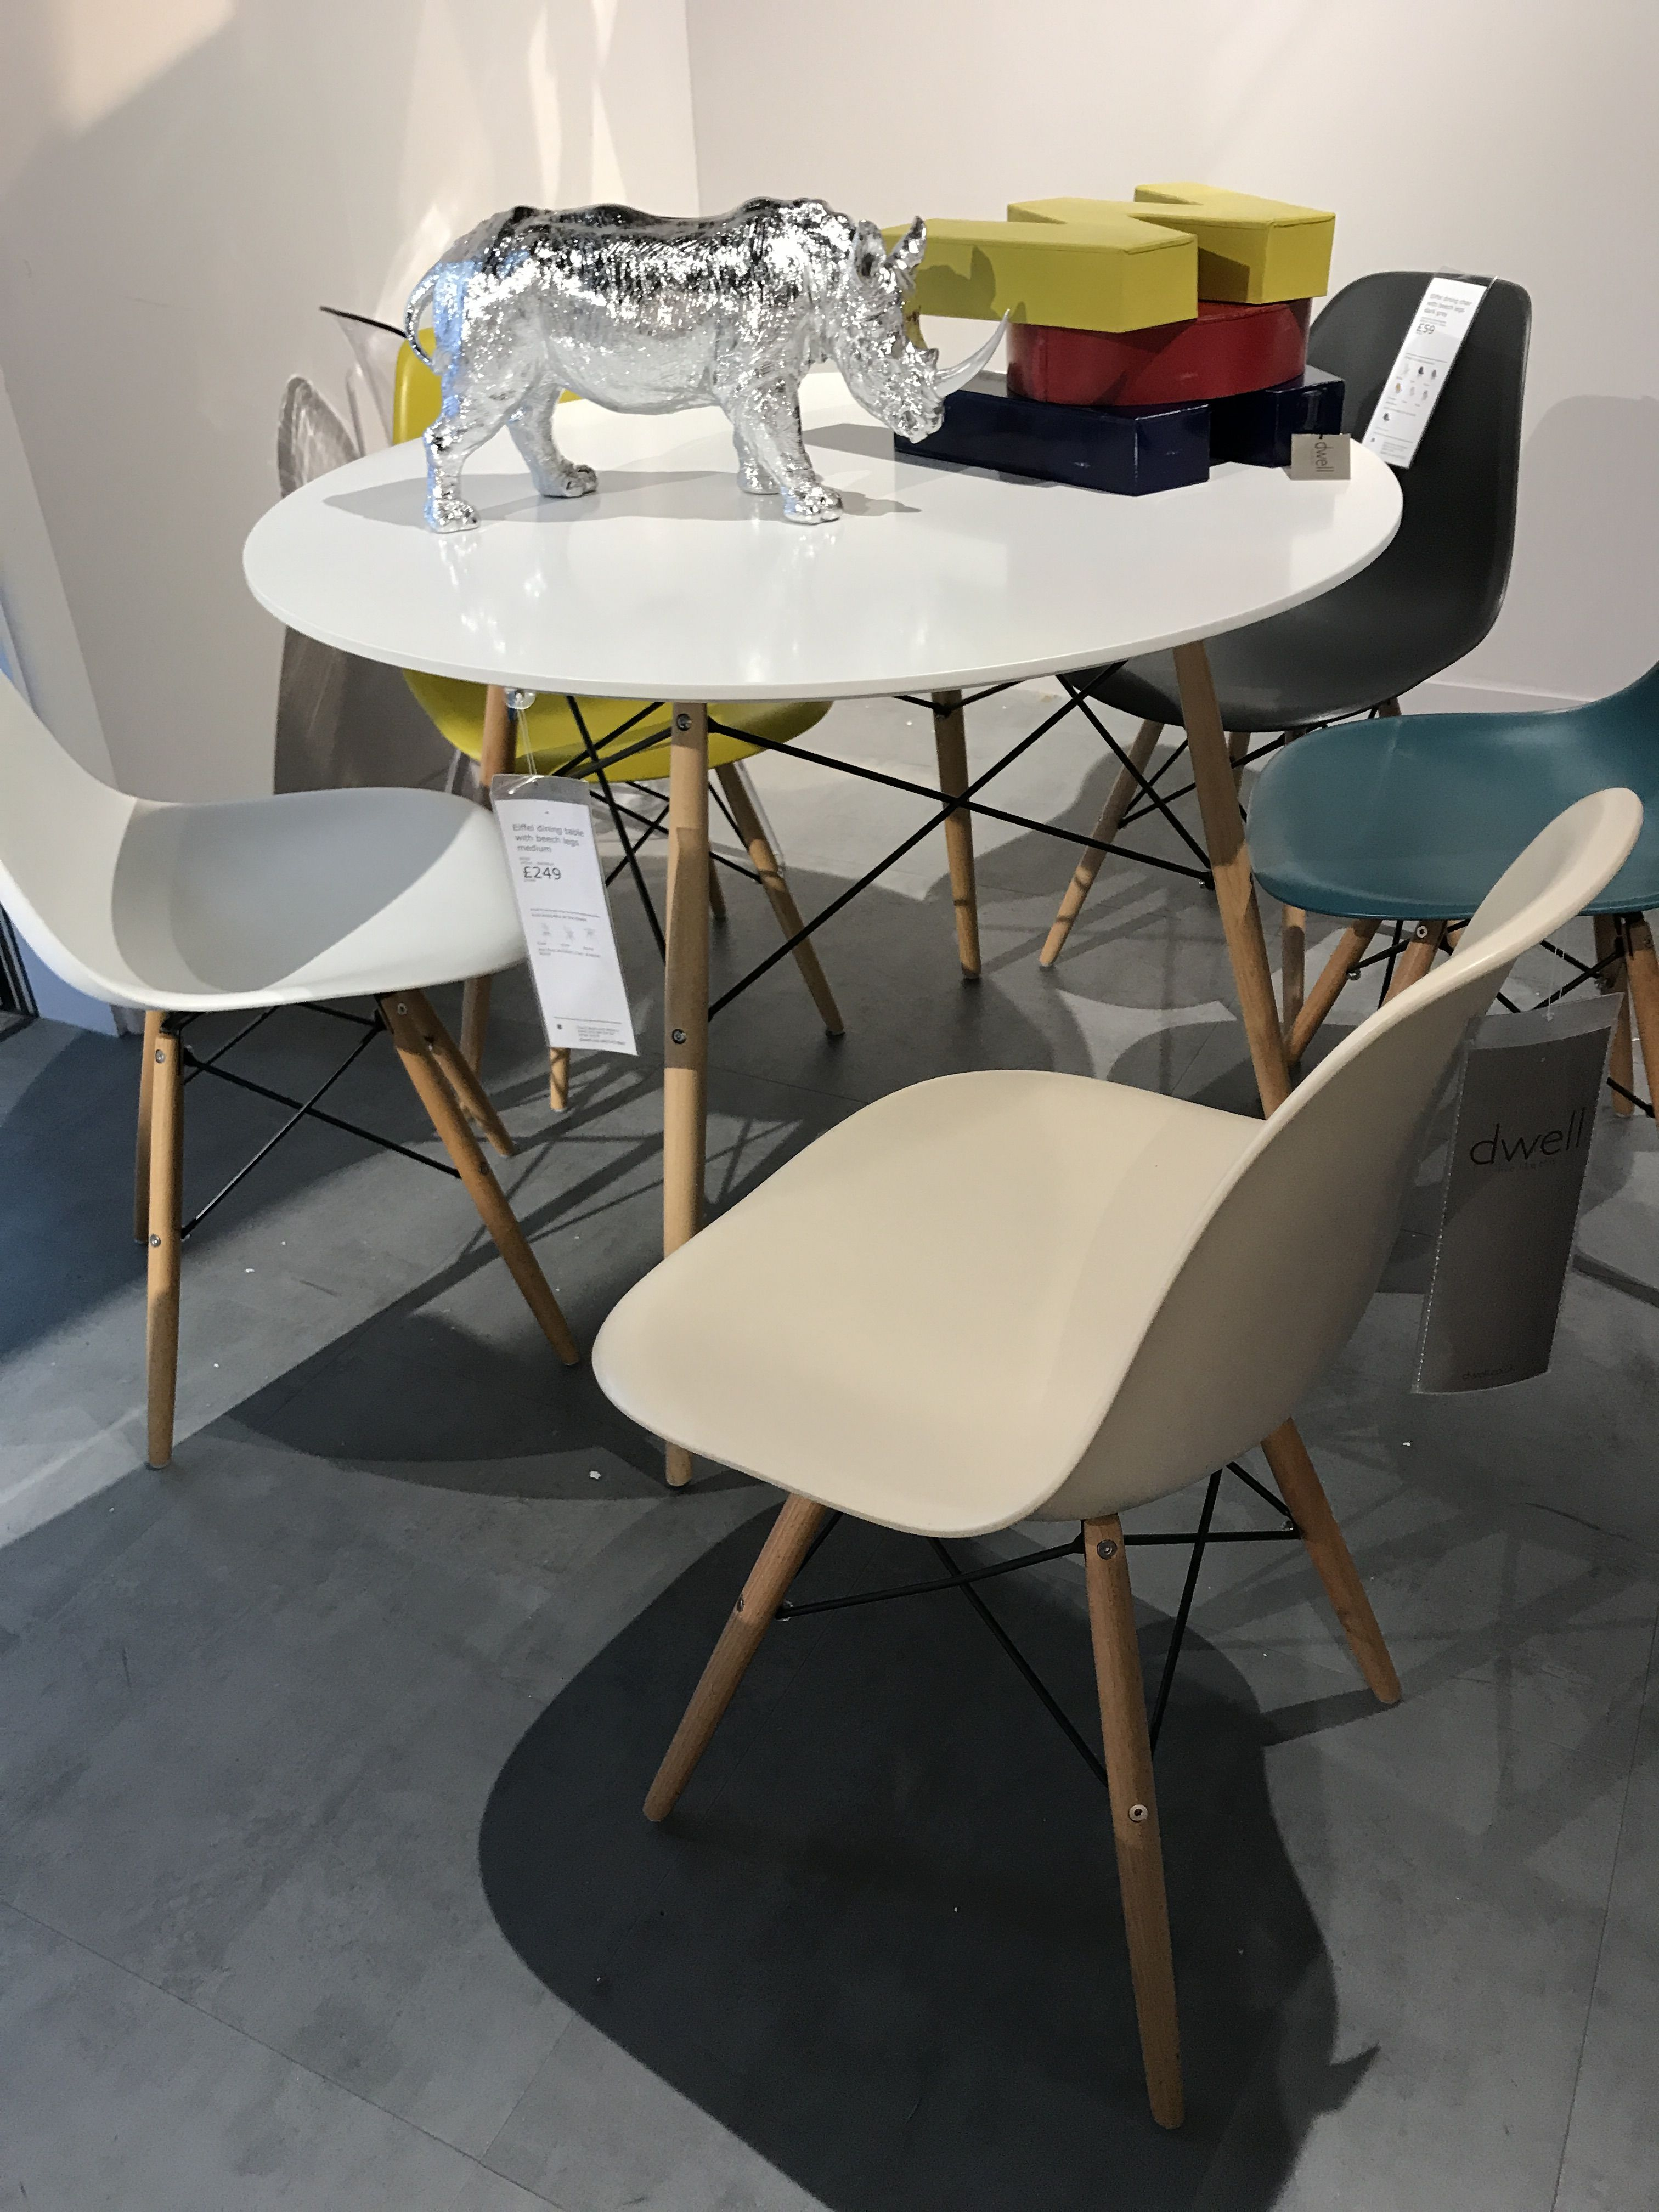 Hush image by sam green dining chairs home decor eames